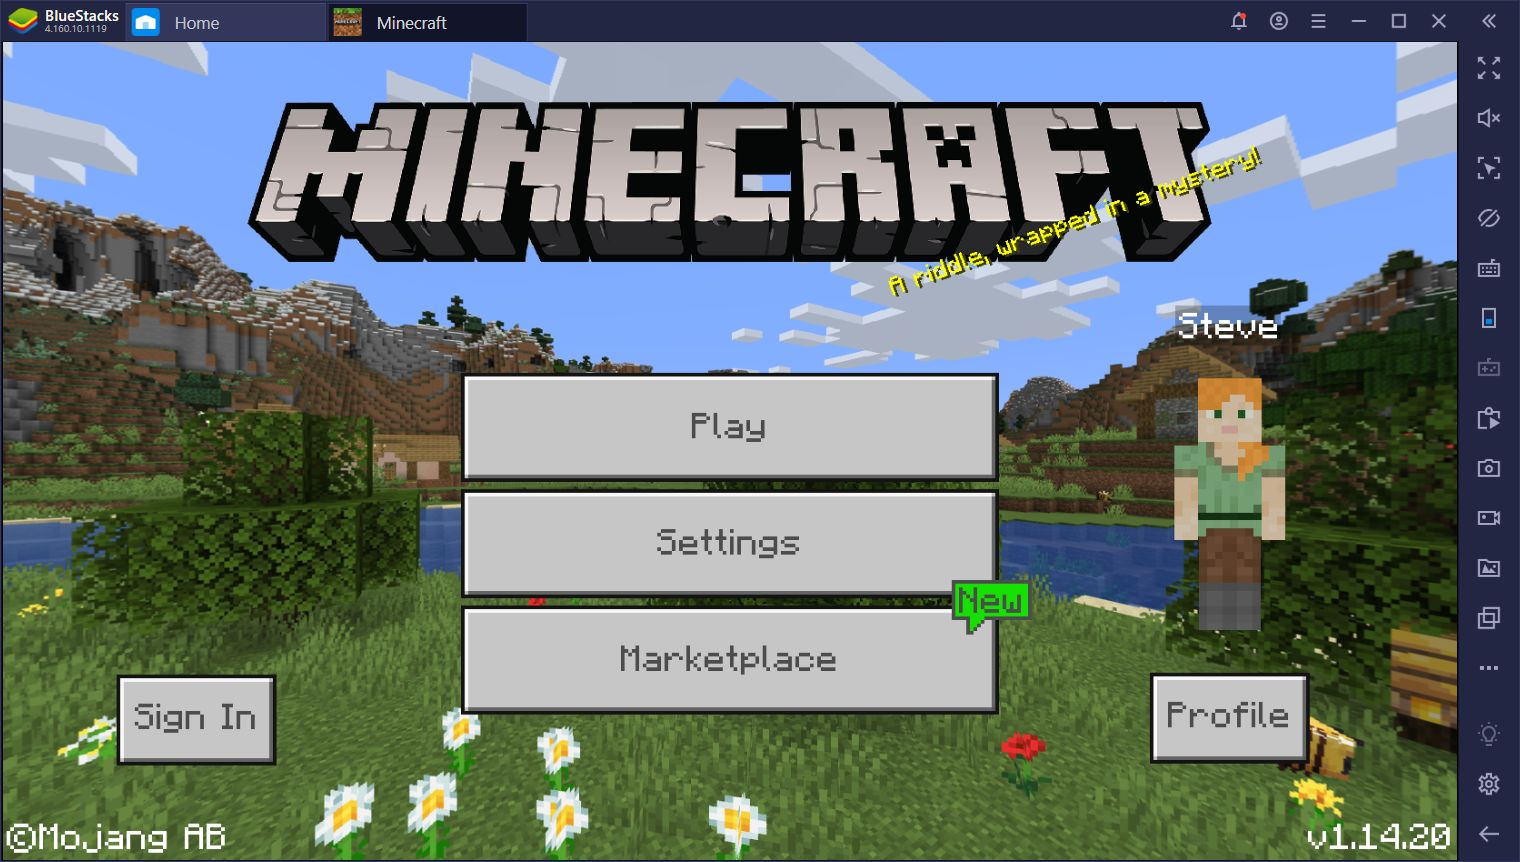 Minecraft on PC is Now Available on BlueStacks